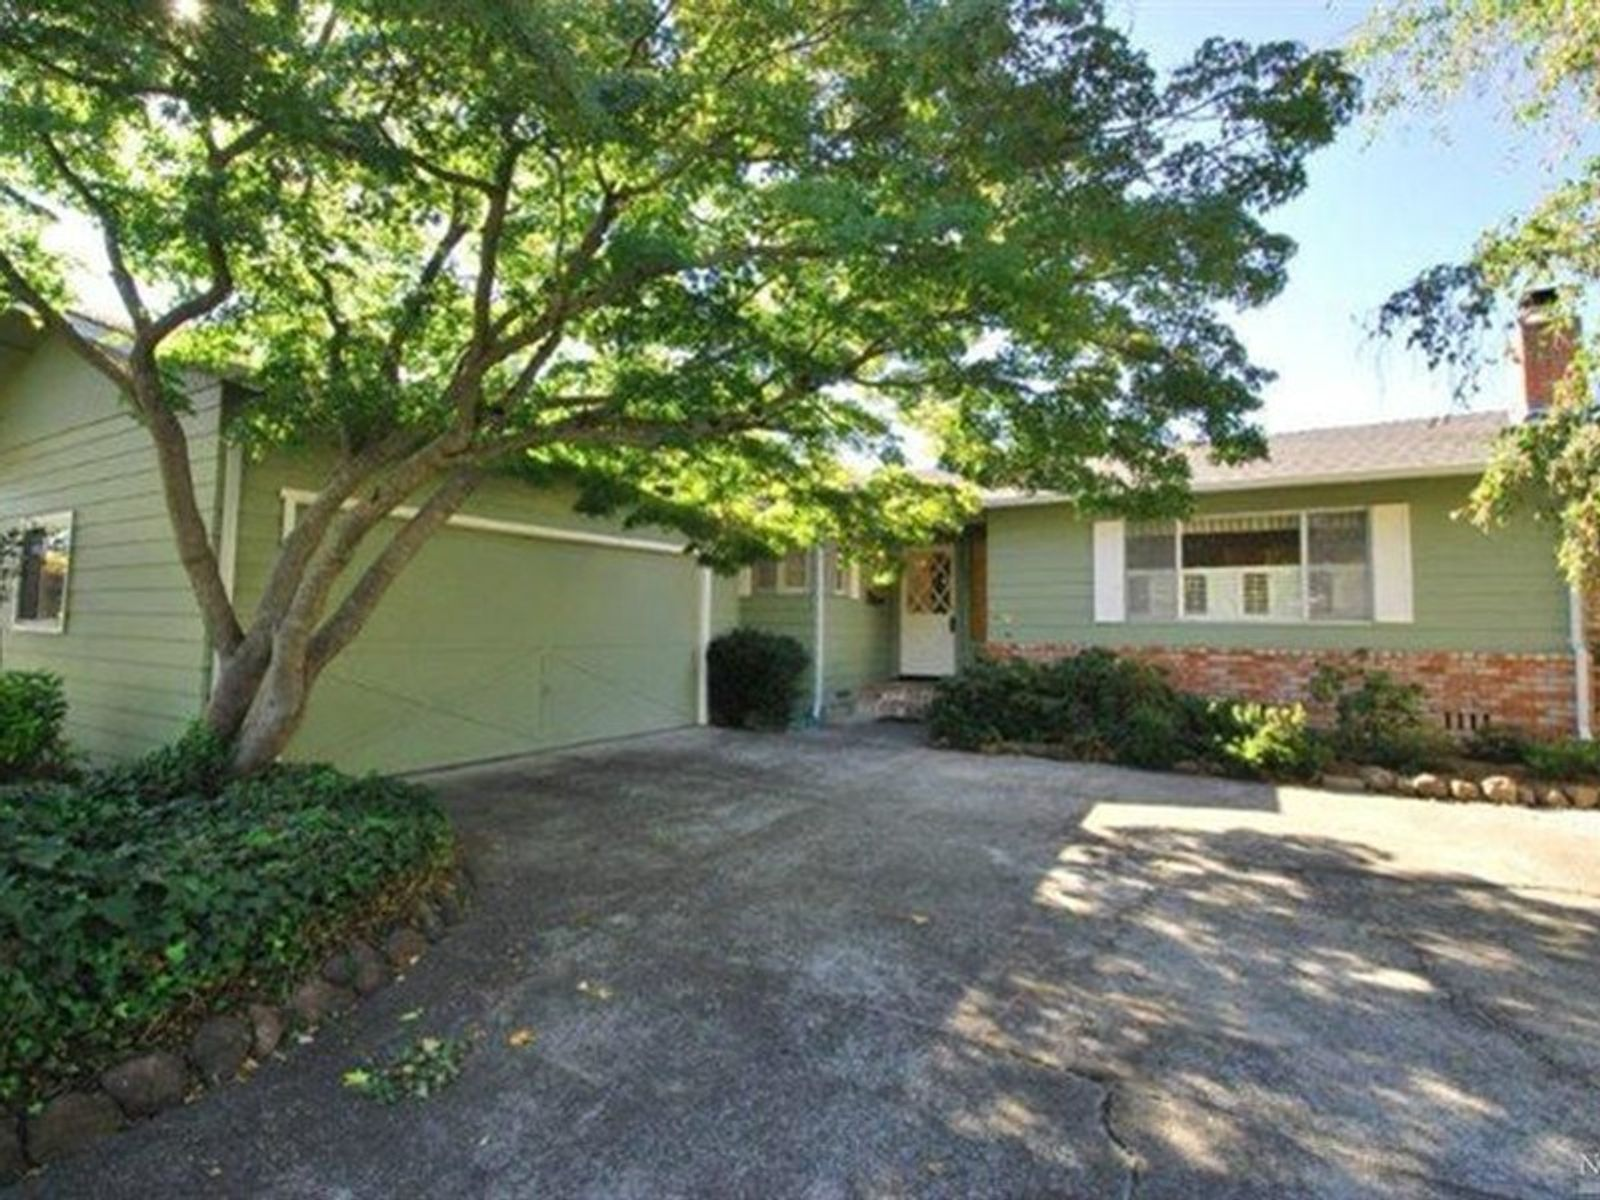 641 White Briar Dr, Sonoma CA Single Family Home - Sonoma - Napa Real Estate